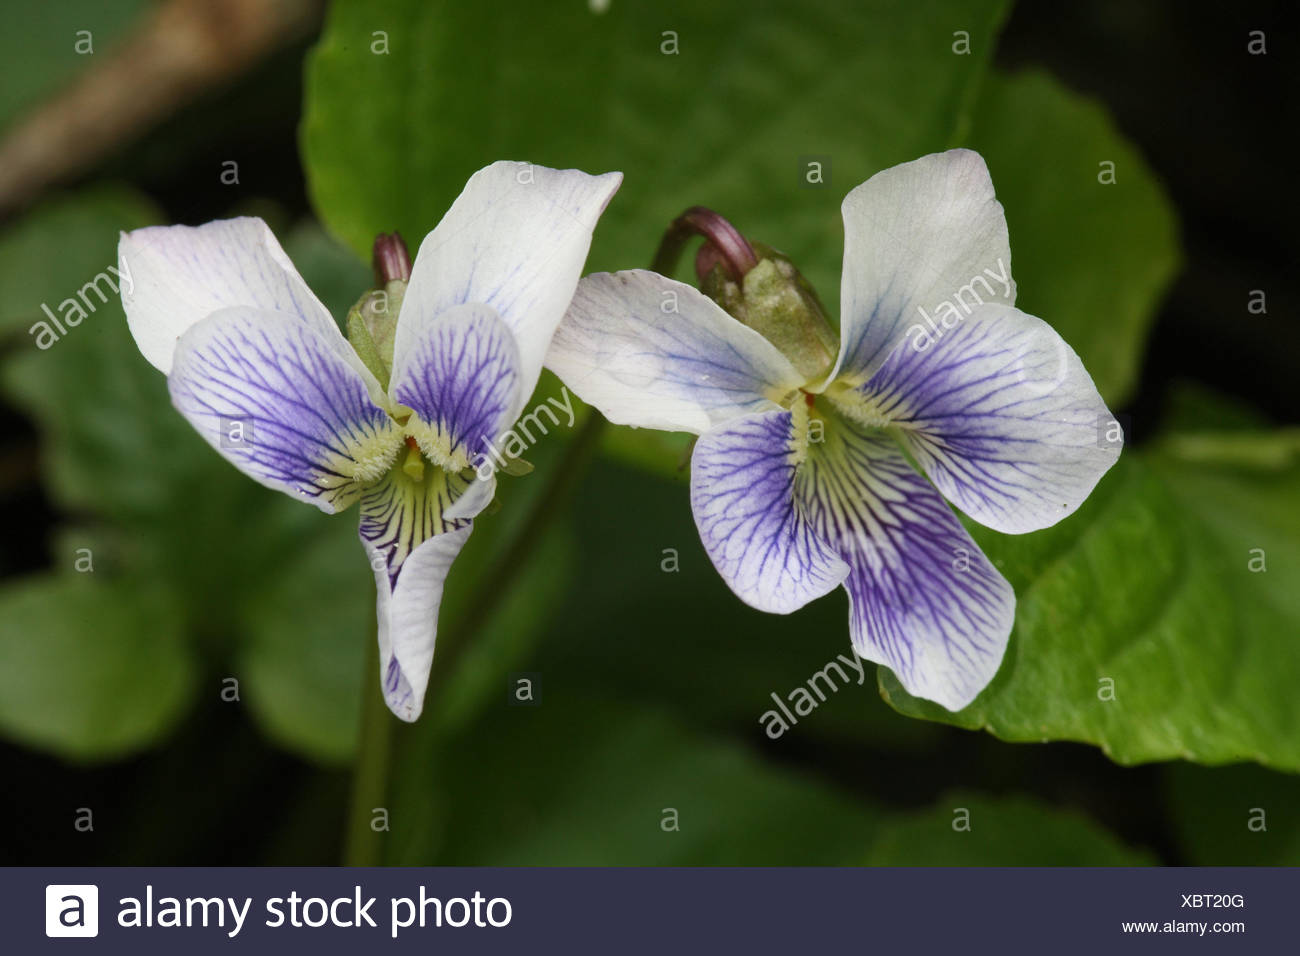 White Violet Flower Meaning Images Flower Decoration Ideas